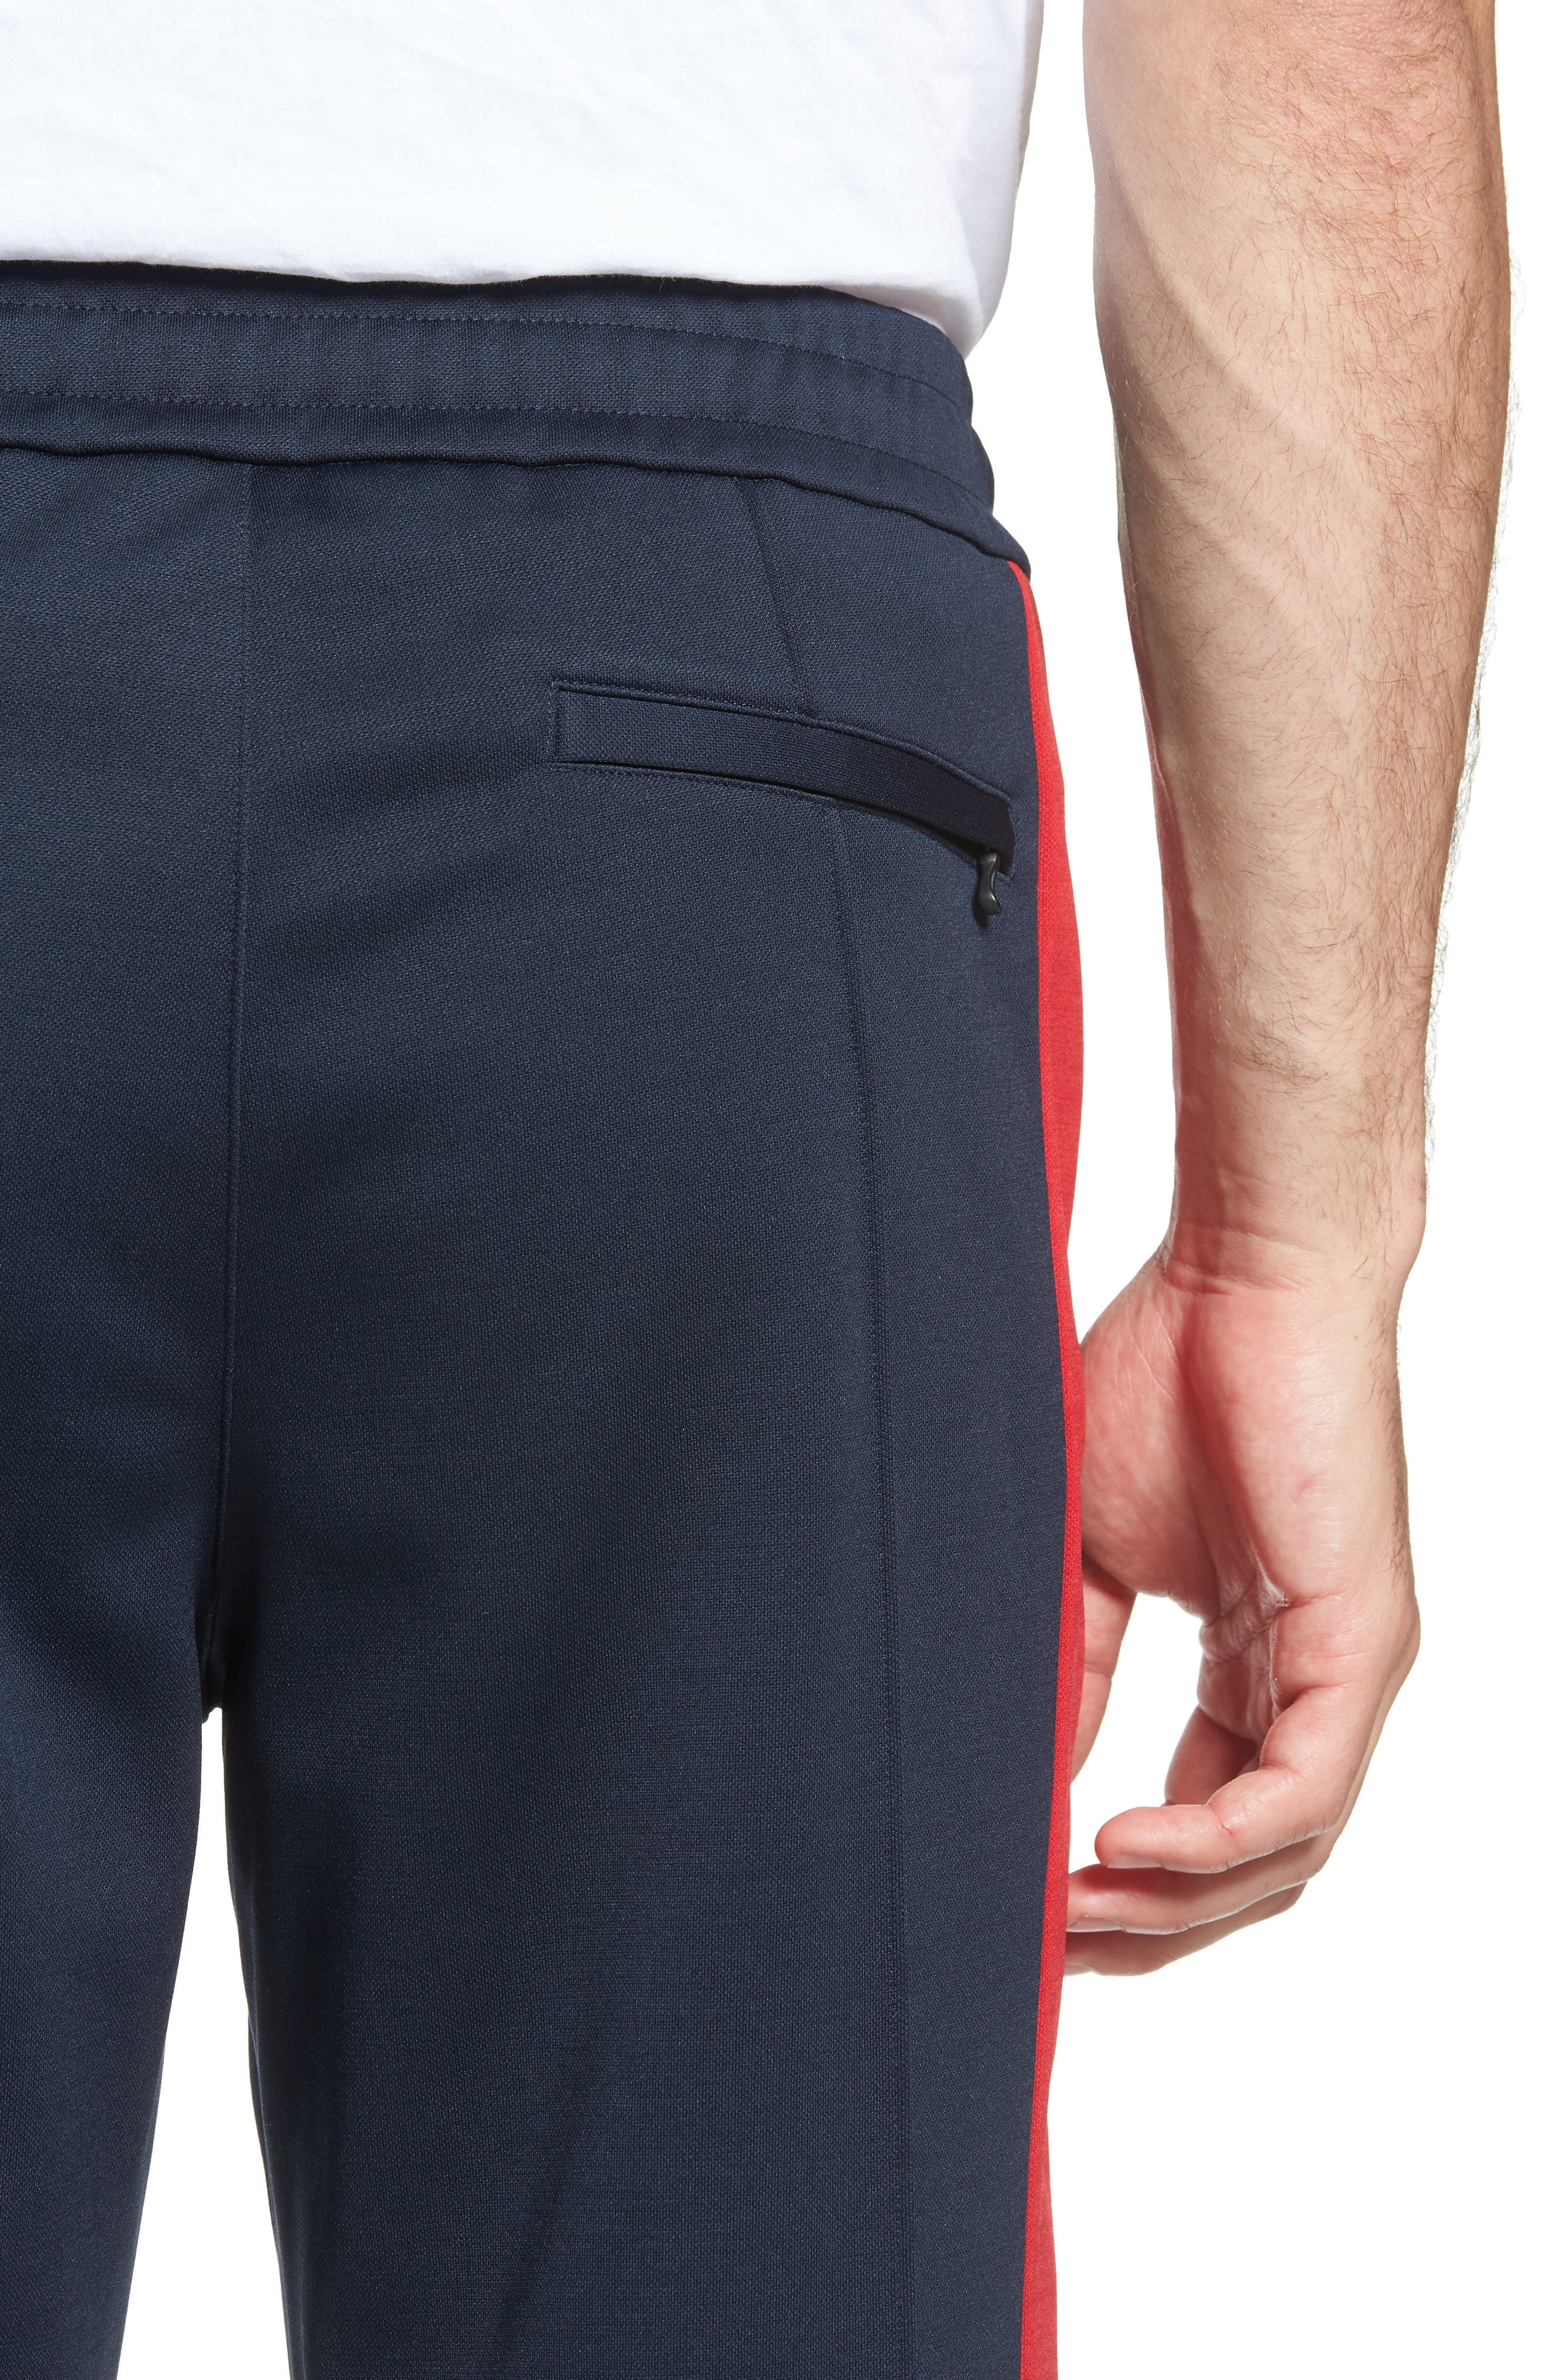 Club Slim Fit Track Pants,                             Alternate thumbnail 4, color,                             NAVY/ RED